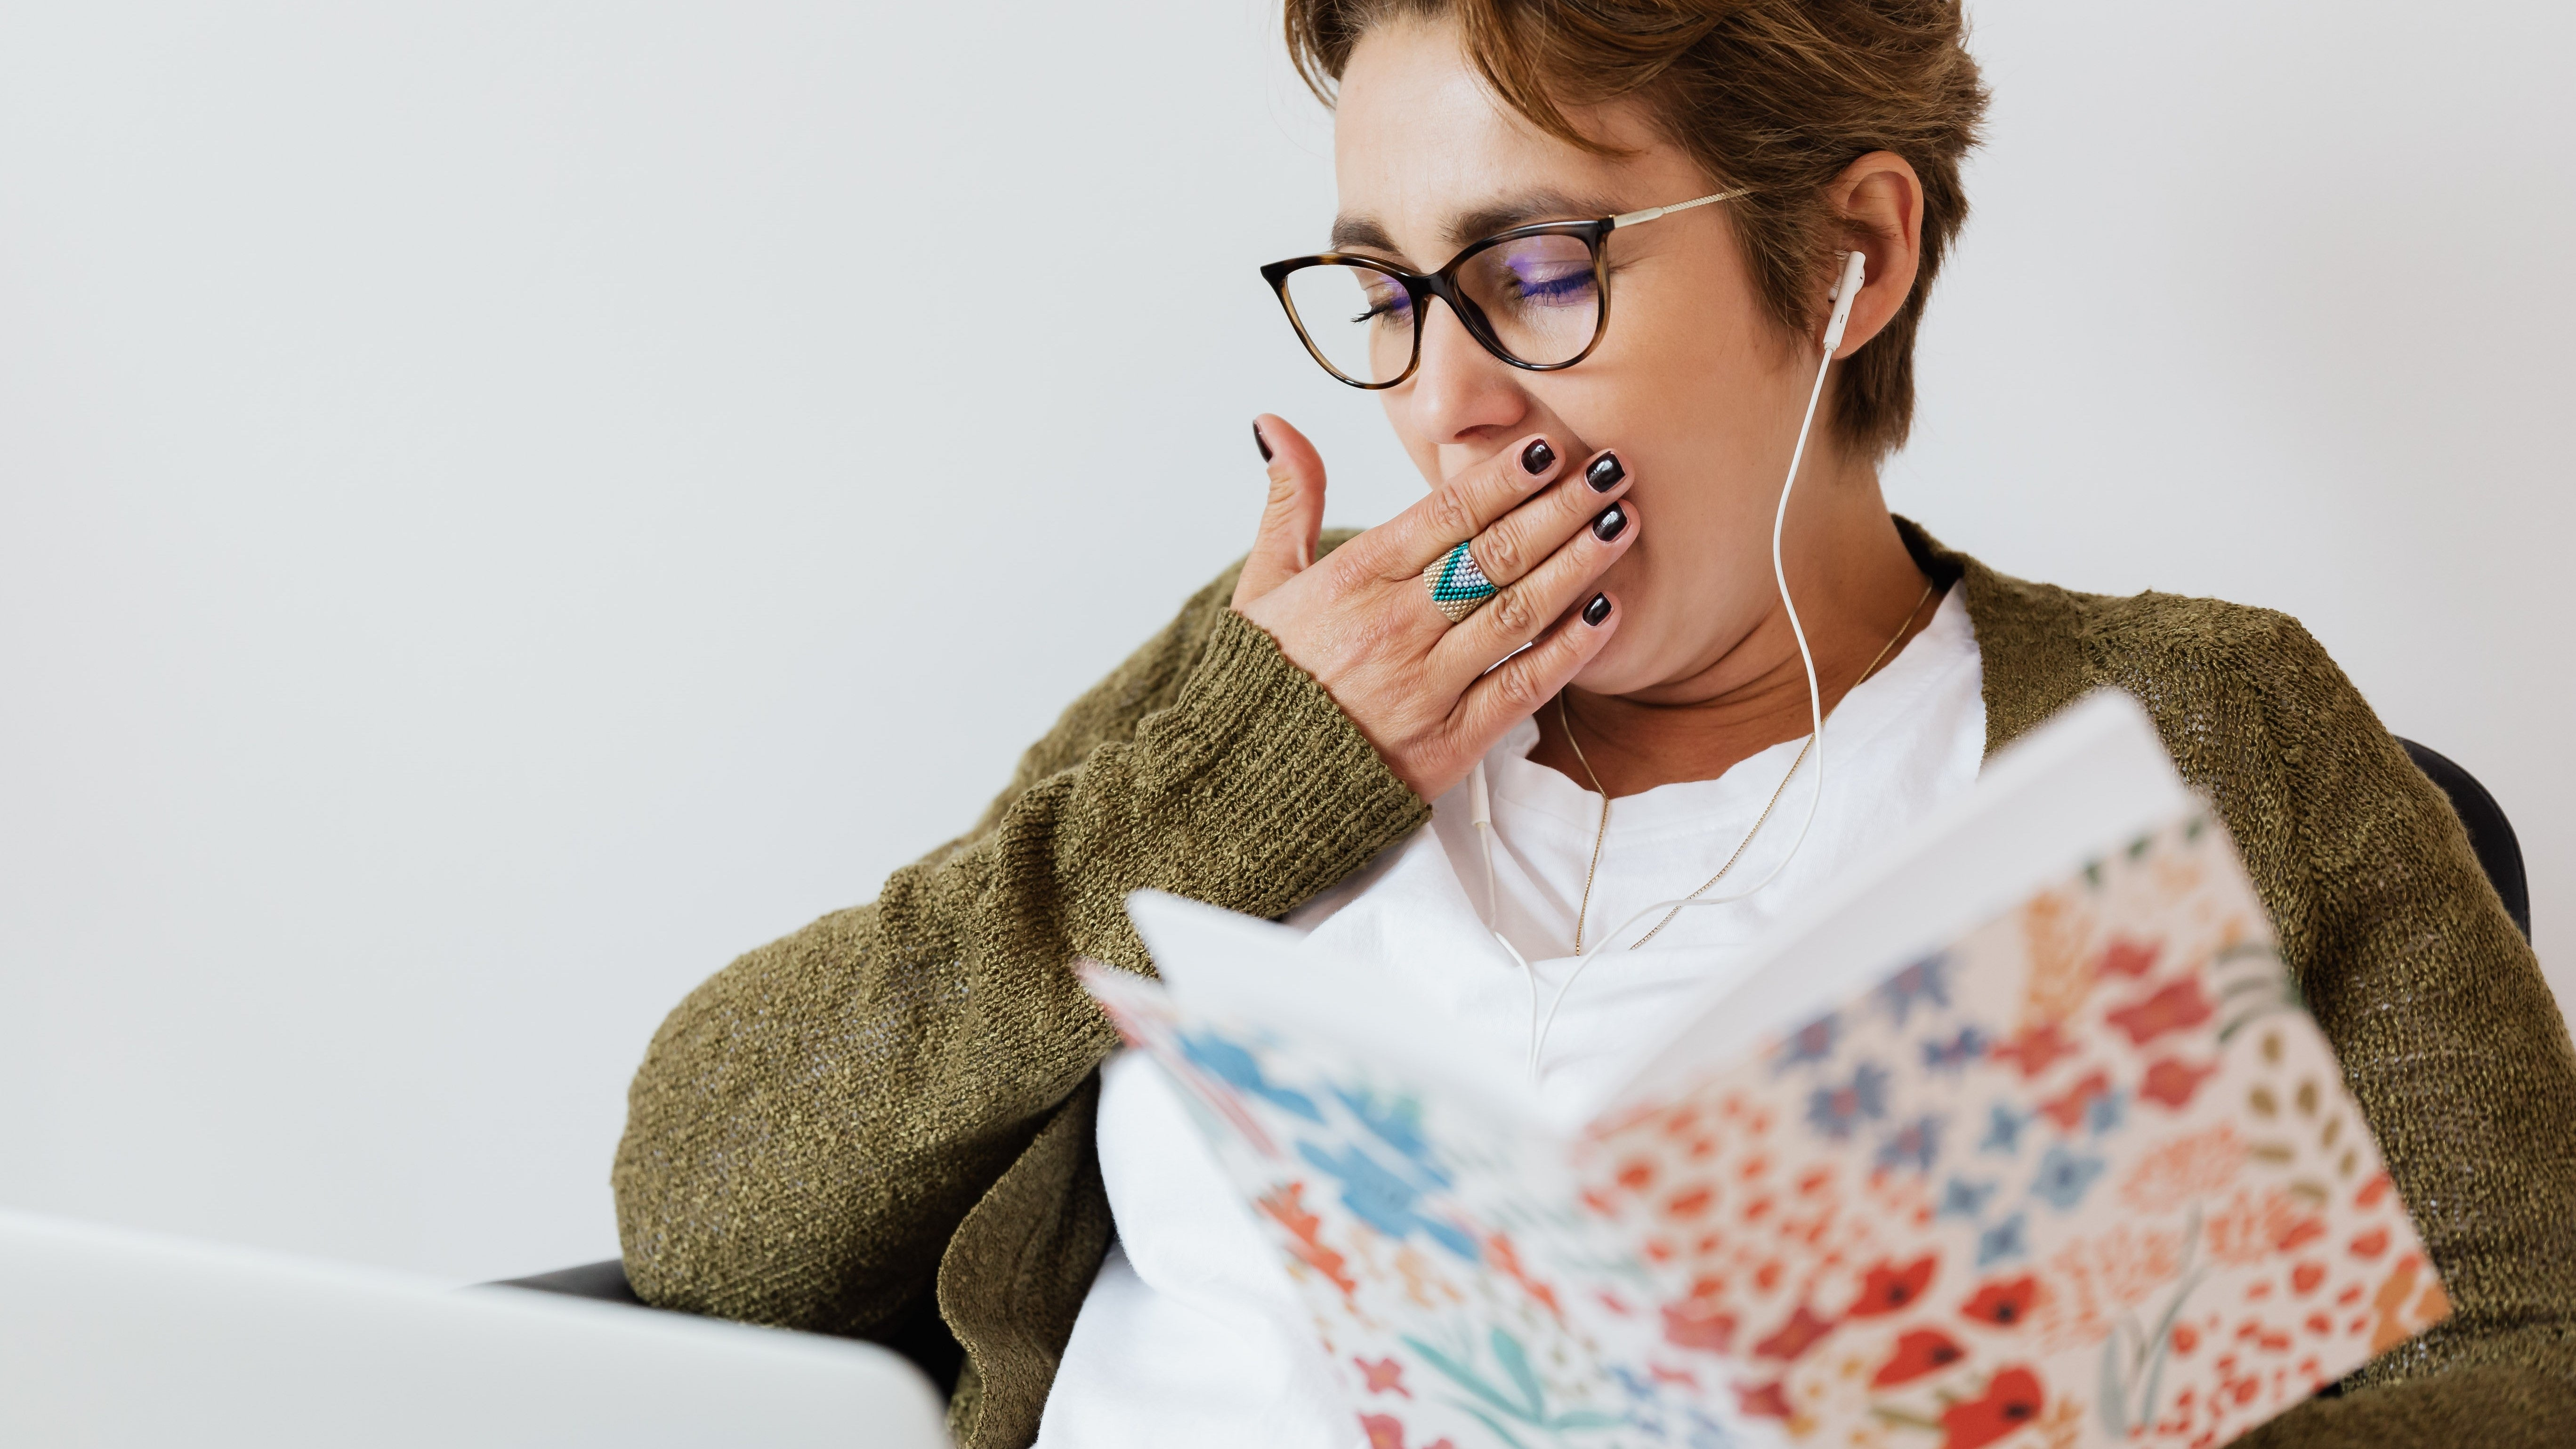 woman wearing glasses yawning and holding a book